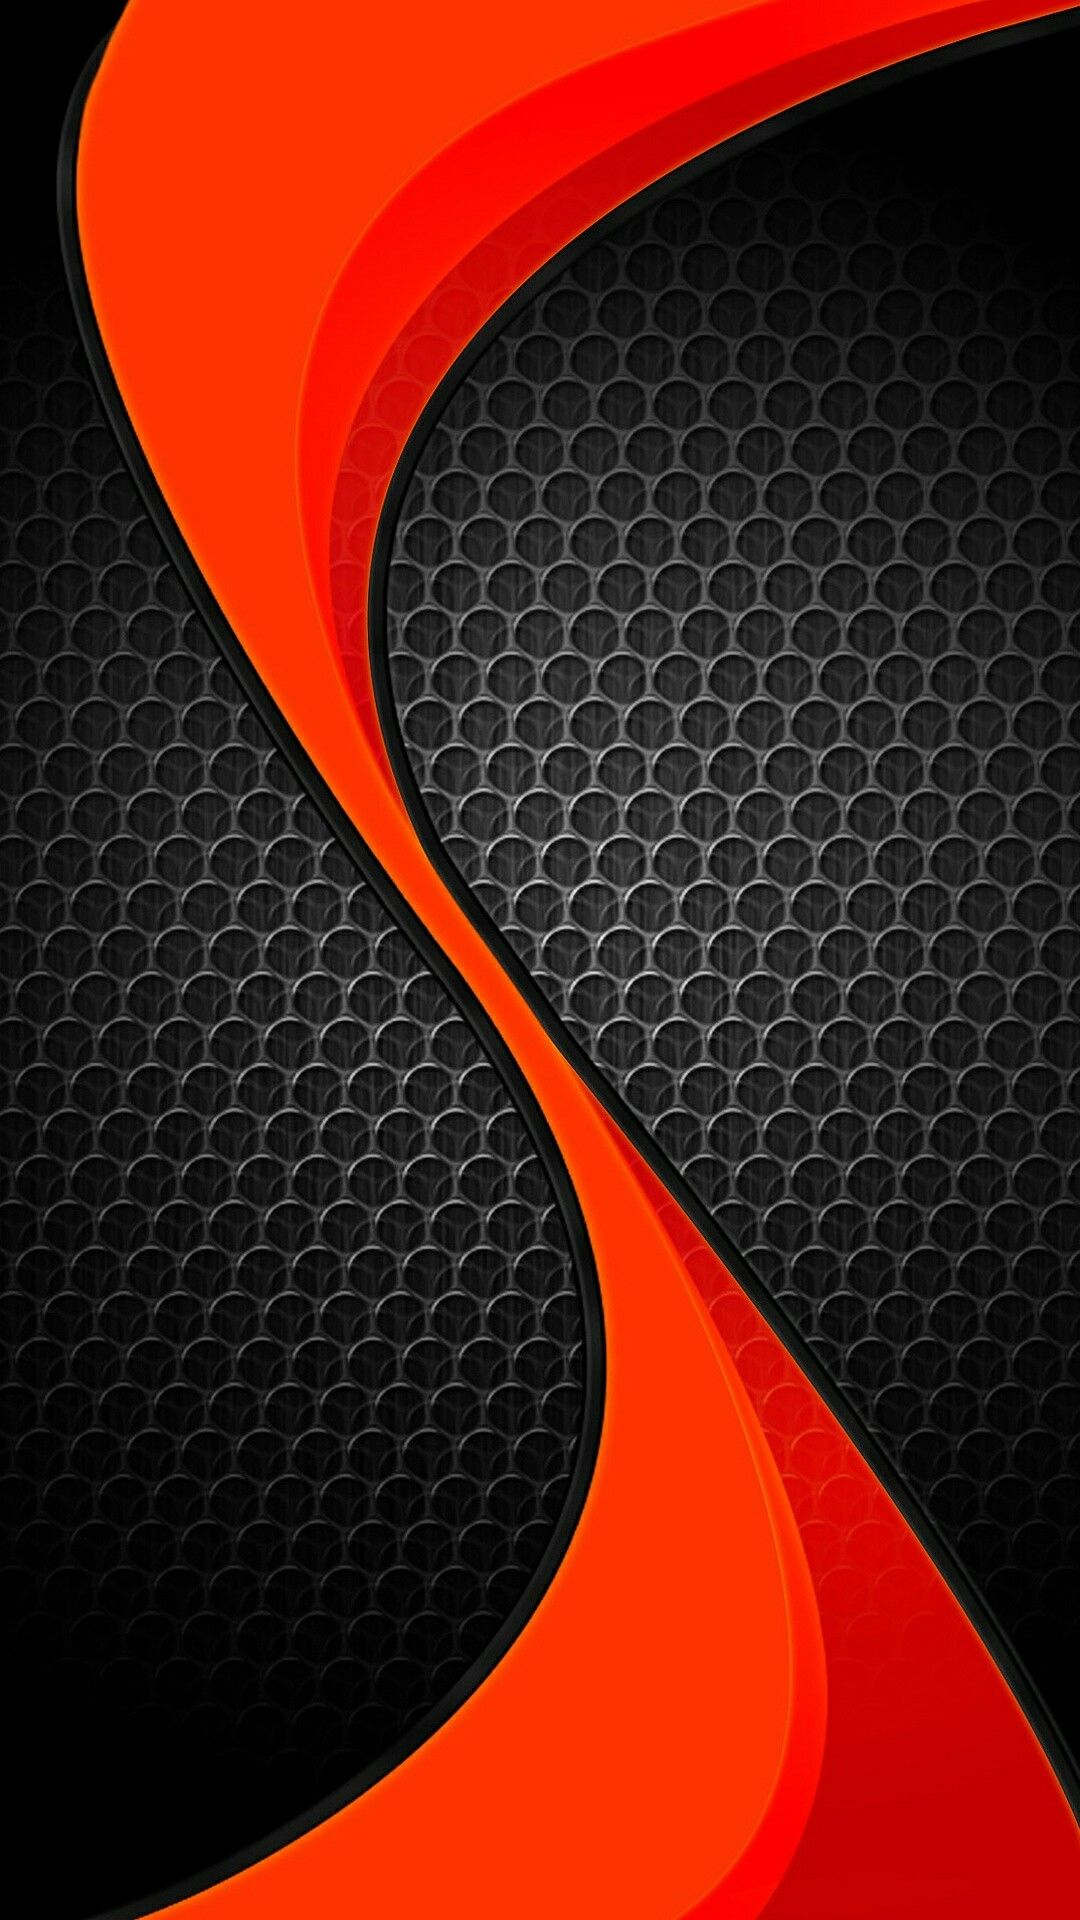 Black and Red Orange Abstract Wallpaper Abstract and Geometric 1080x1920